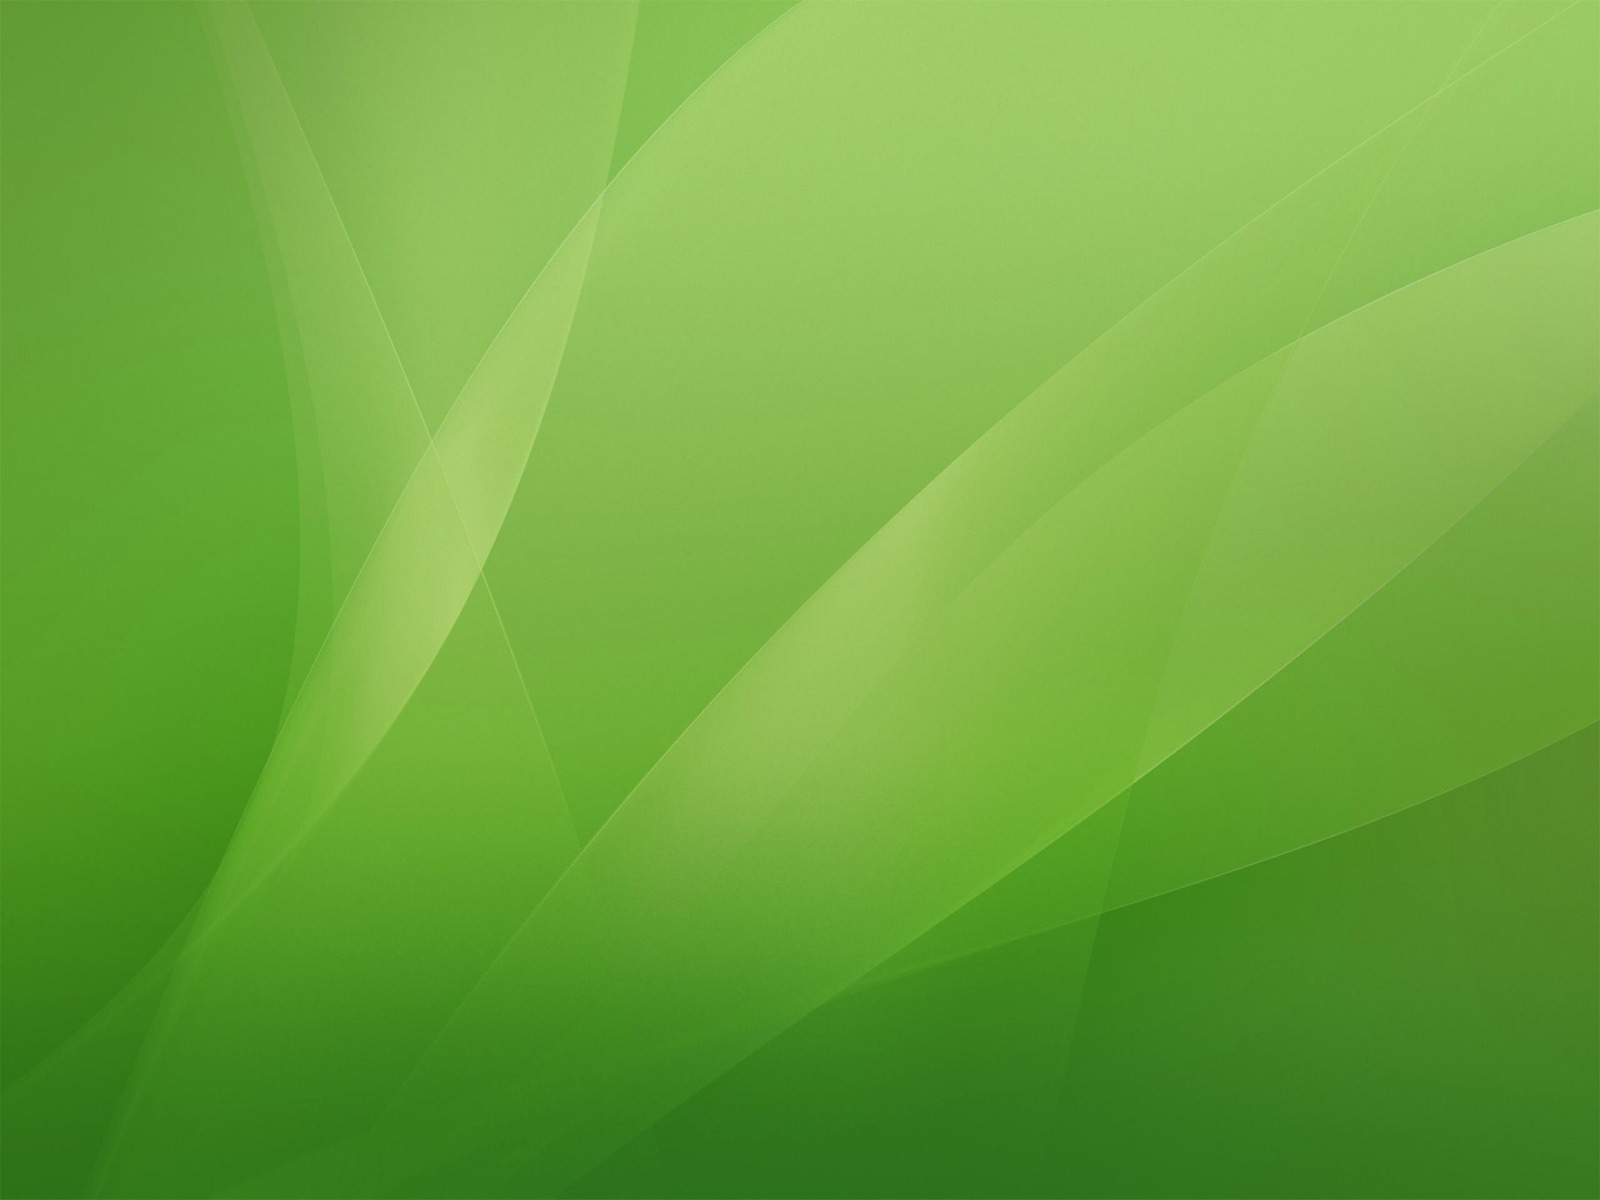 Light Green Backgrounds wallpaper Light Green Backgrounds hd 1600x1200